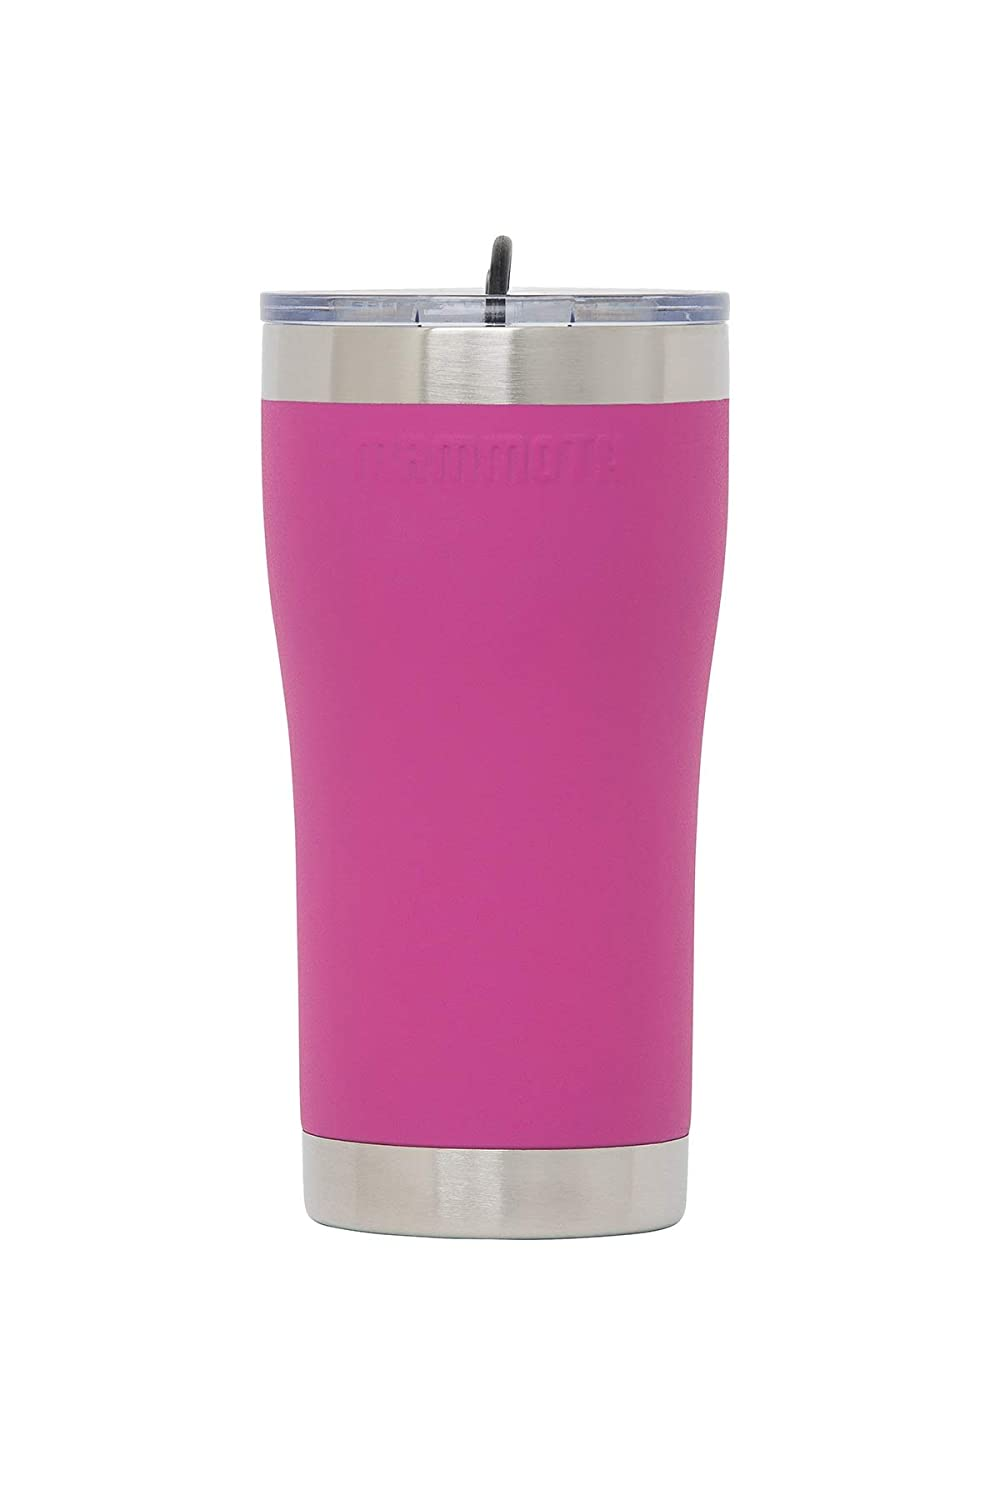 Forest Green Mammoth Coolers Rover Tumbler MS20ROV-342 Double Wall Vacuum Insulated Stainless Steel 20 oz